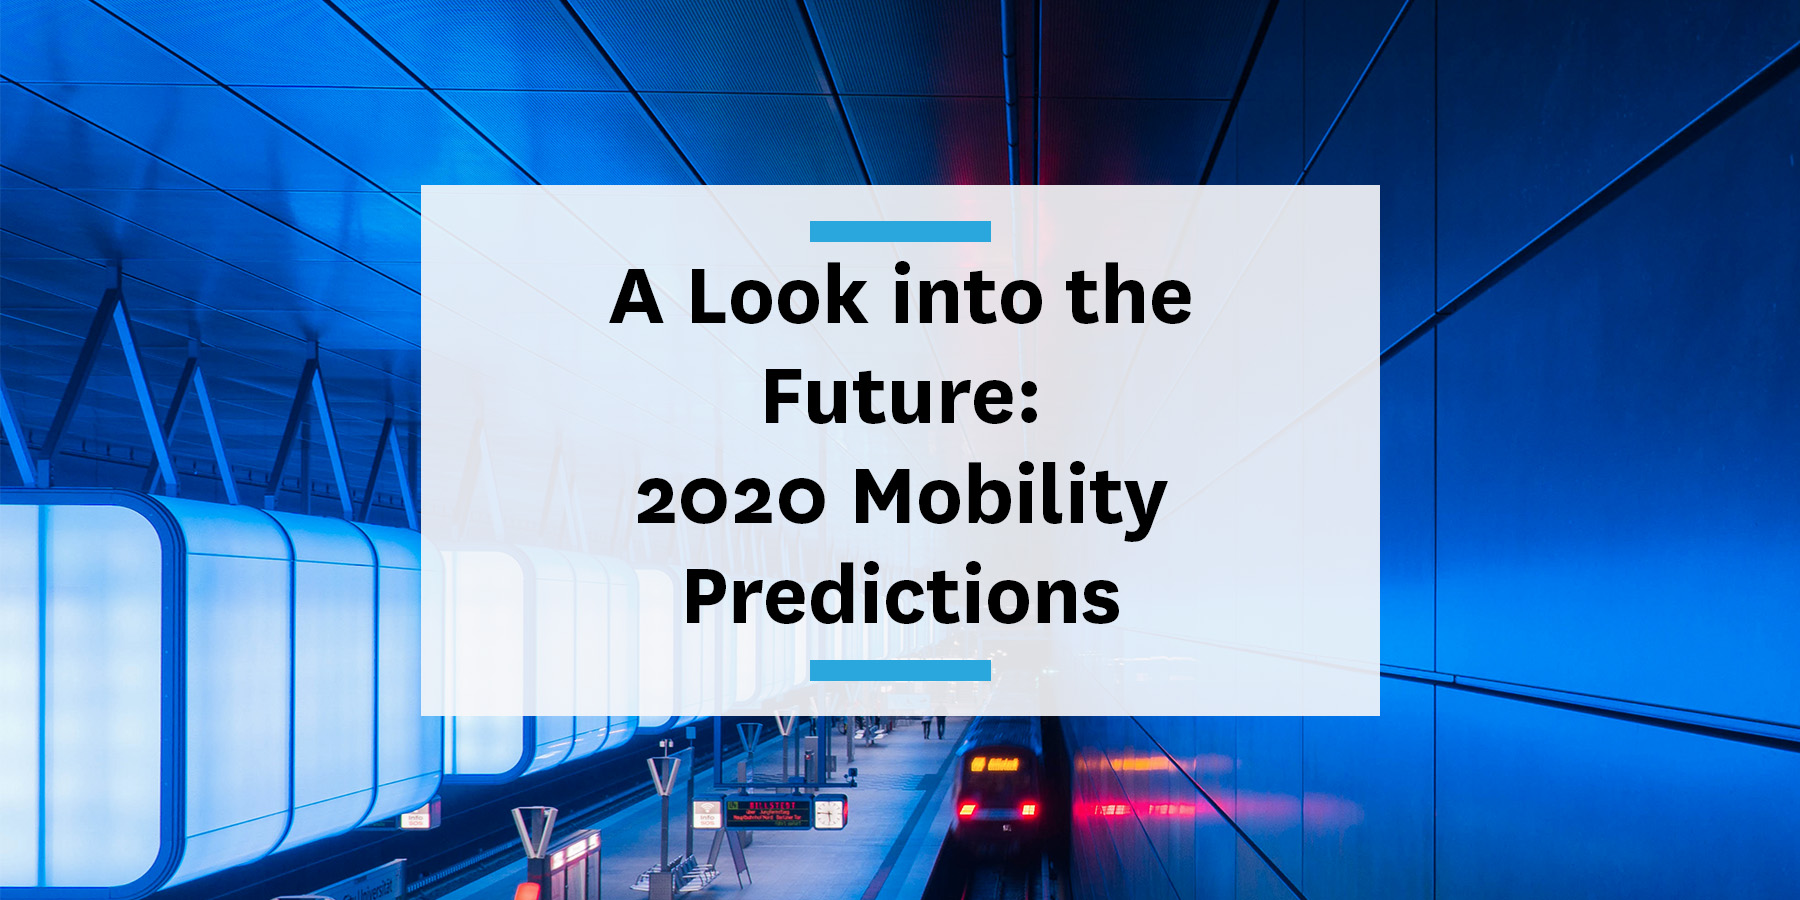 2020 Mobility Predictions blog micromobility transit and commuting trends